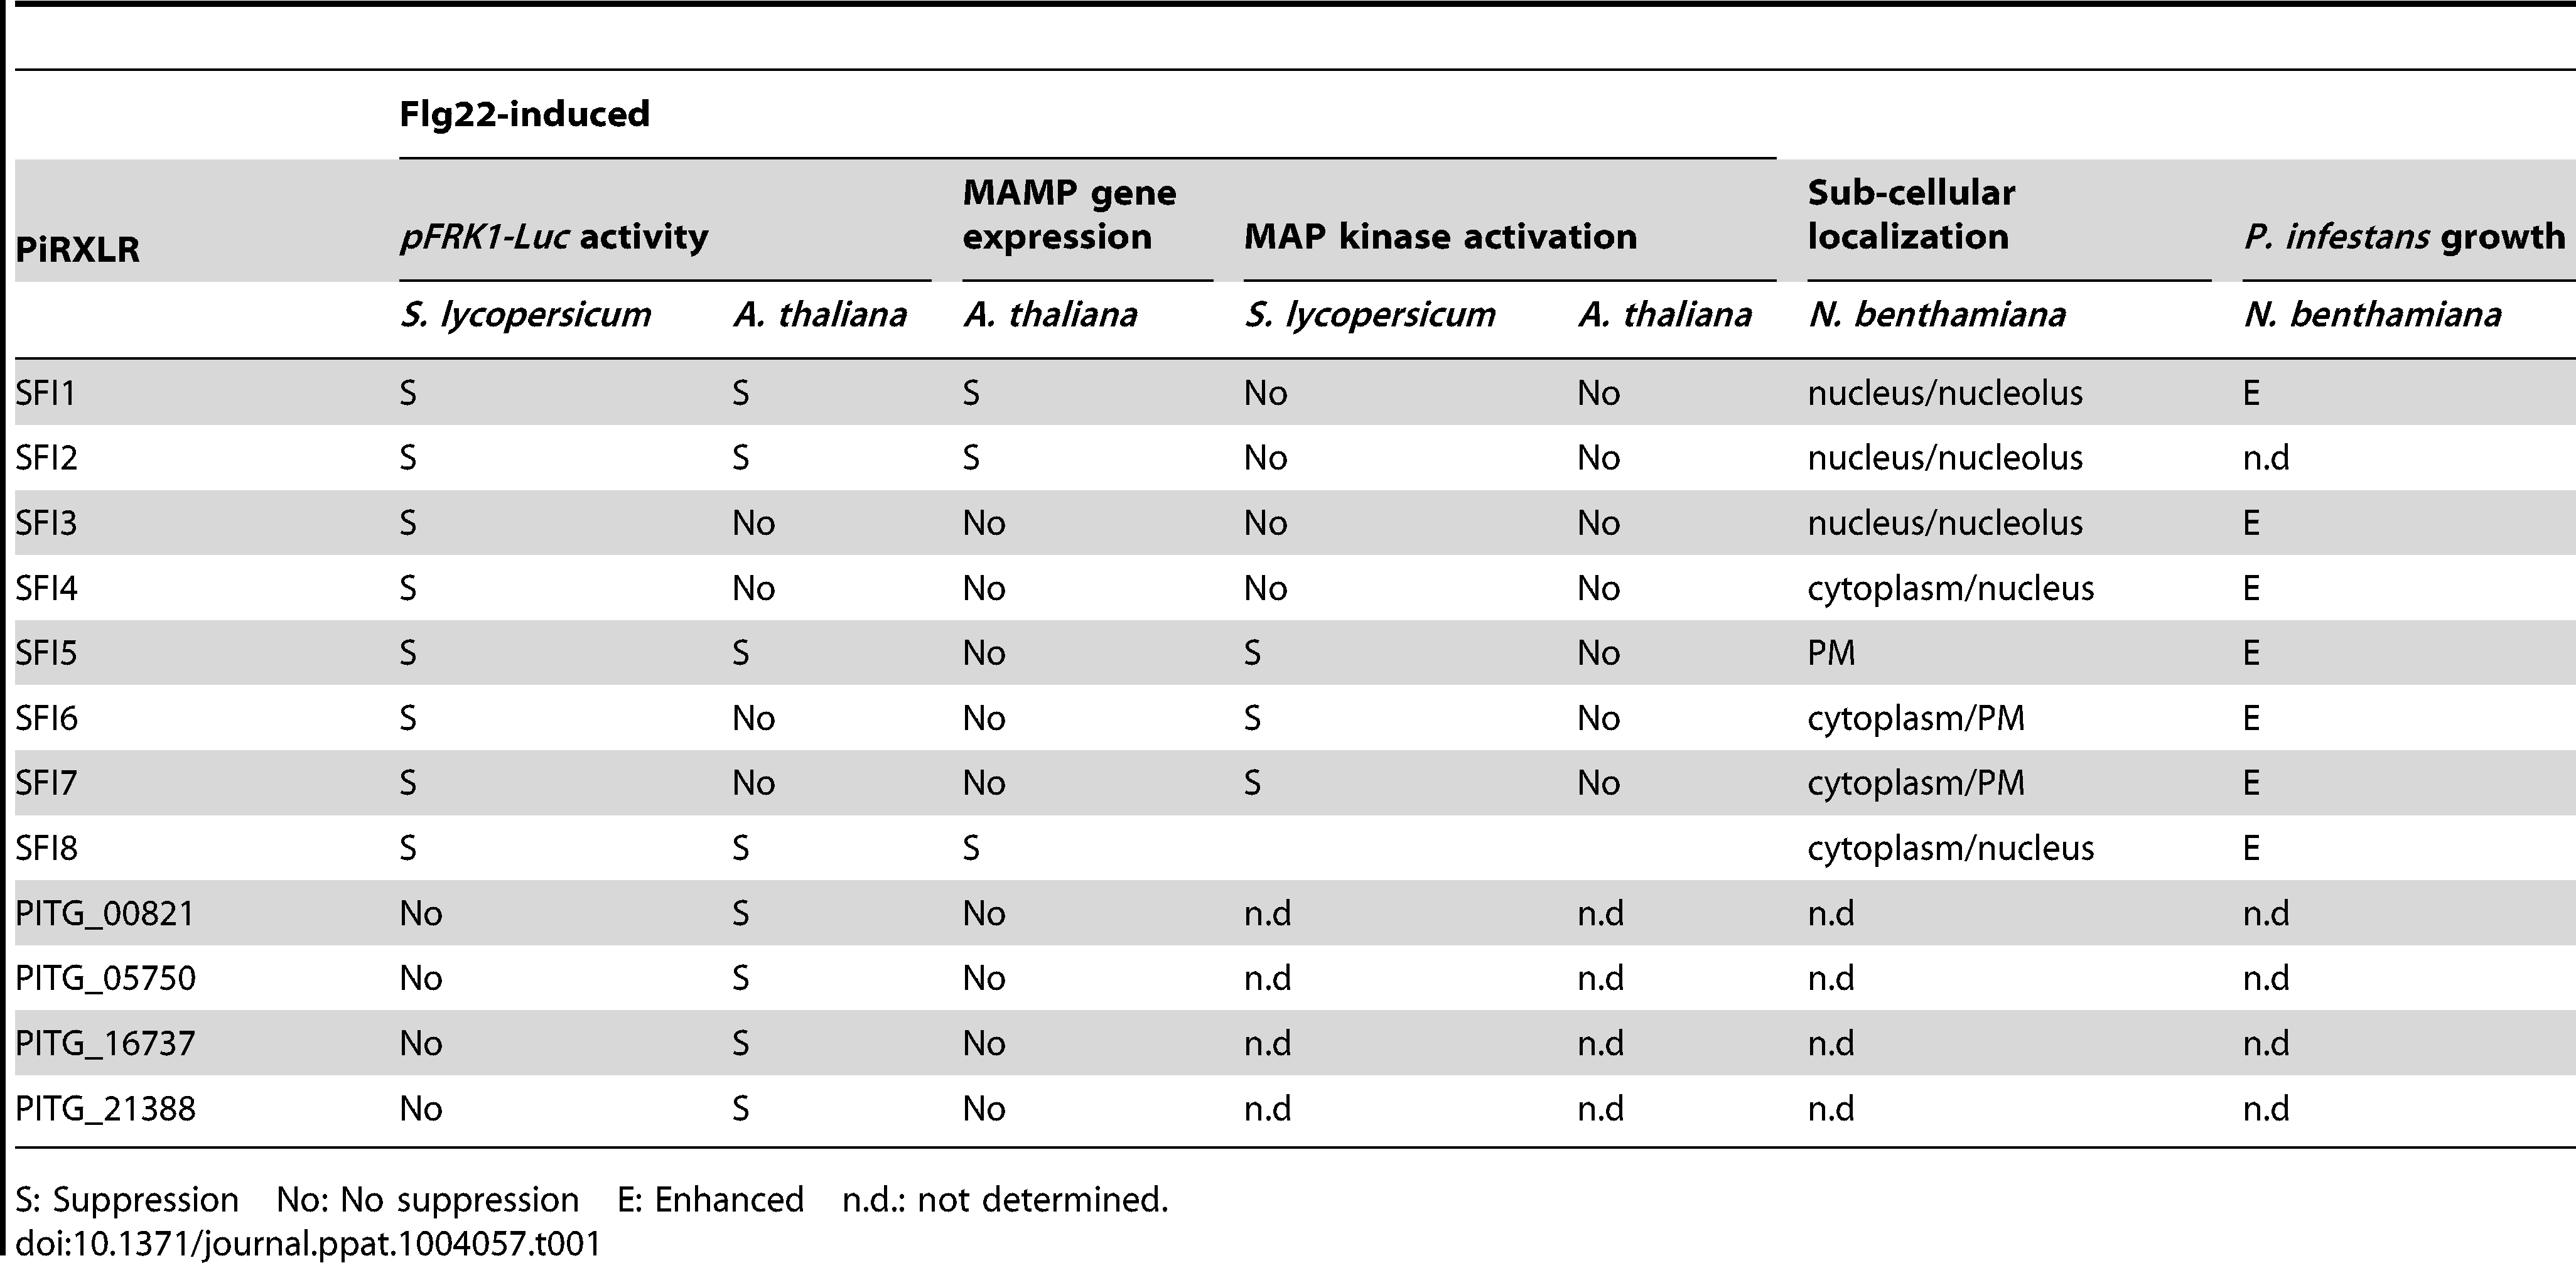 Summary of PiRXLR effectors with suppressing activity on MTI.